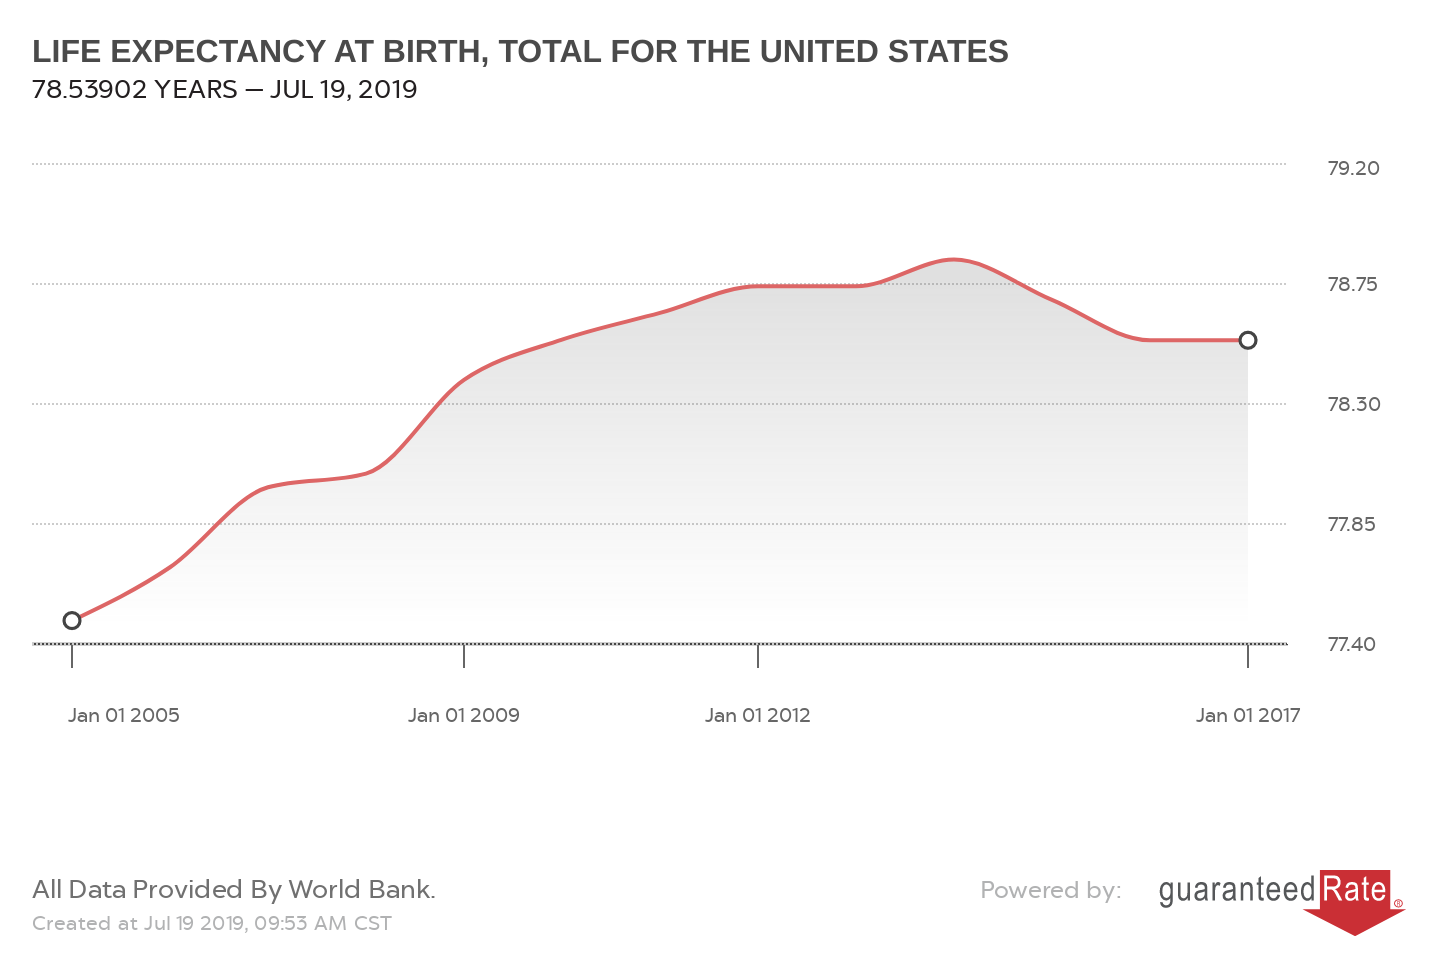 LIFE EXPECTANCY AT BIRTH, TOTAL FOR THE UNITED STATES